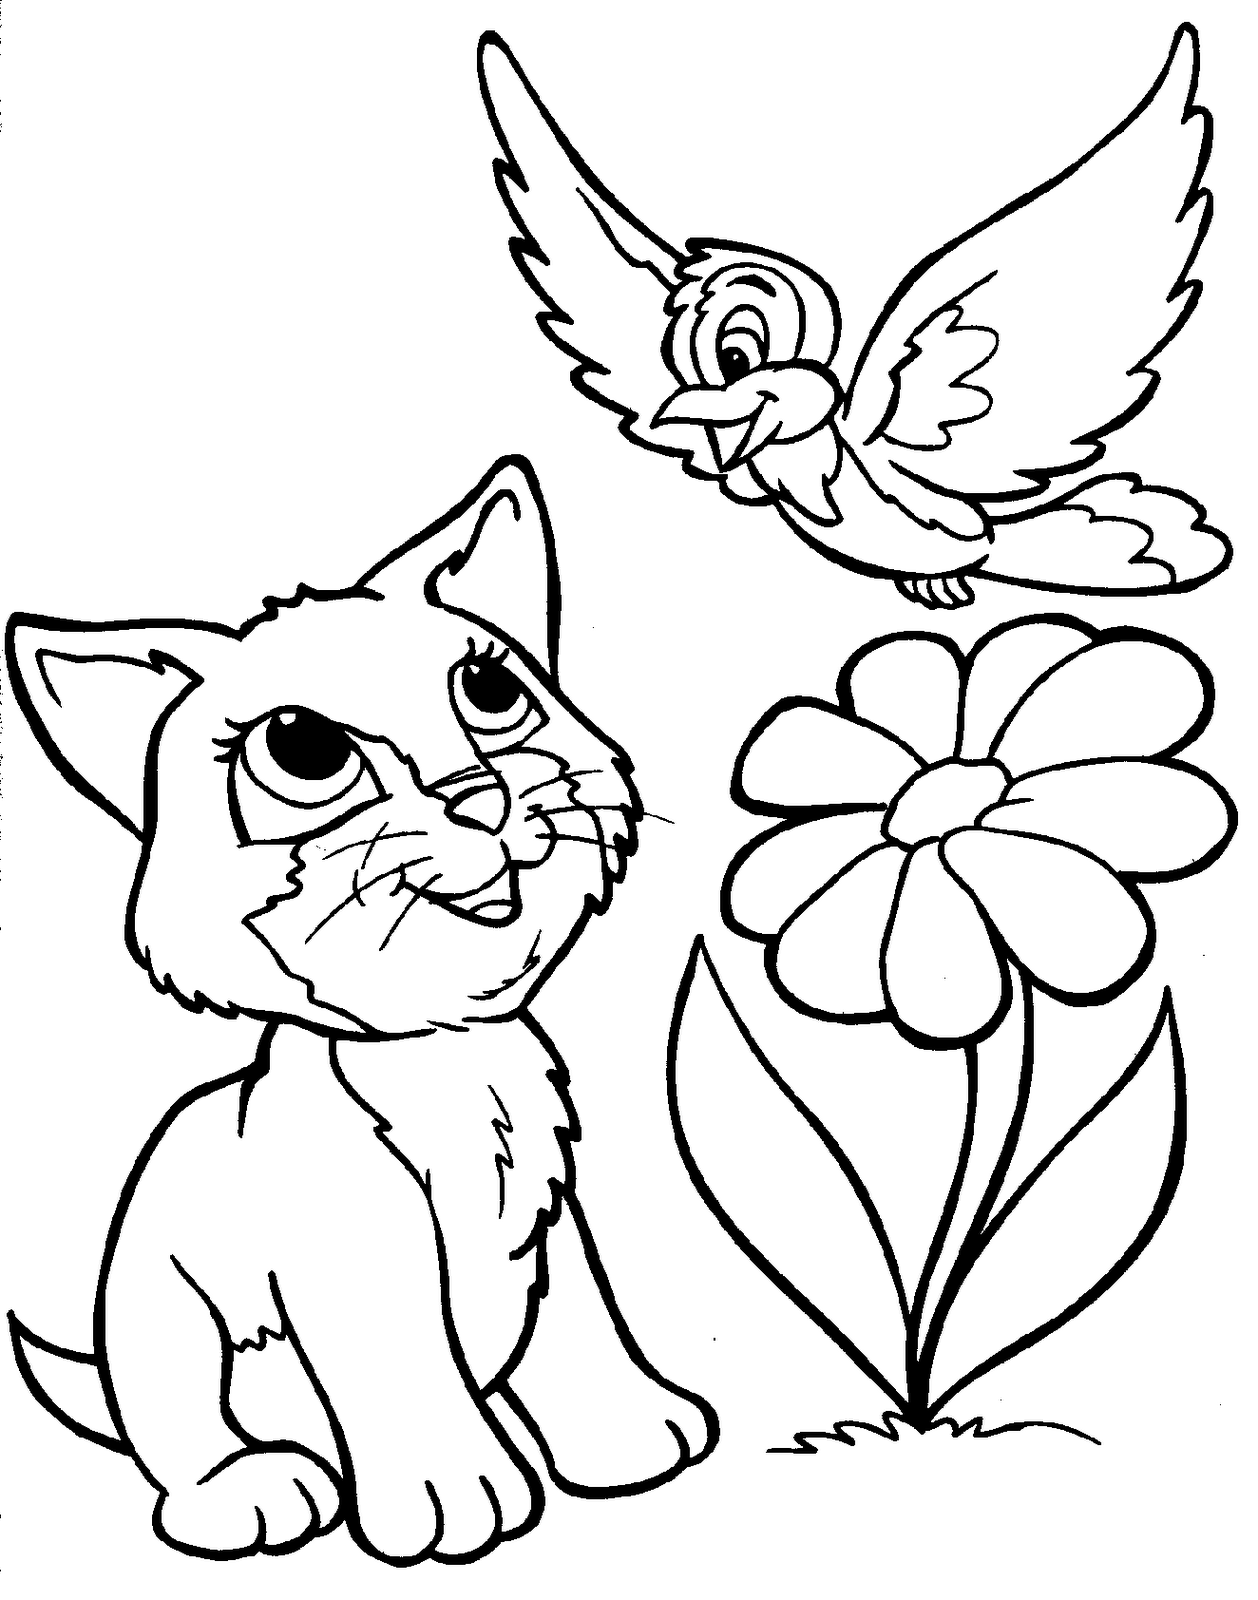 coloring images of animals 10 cute animals coloring pages animals images coloring of